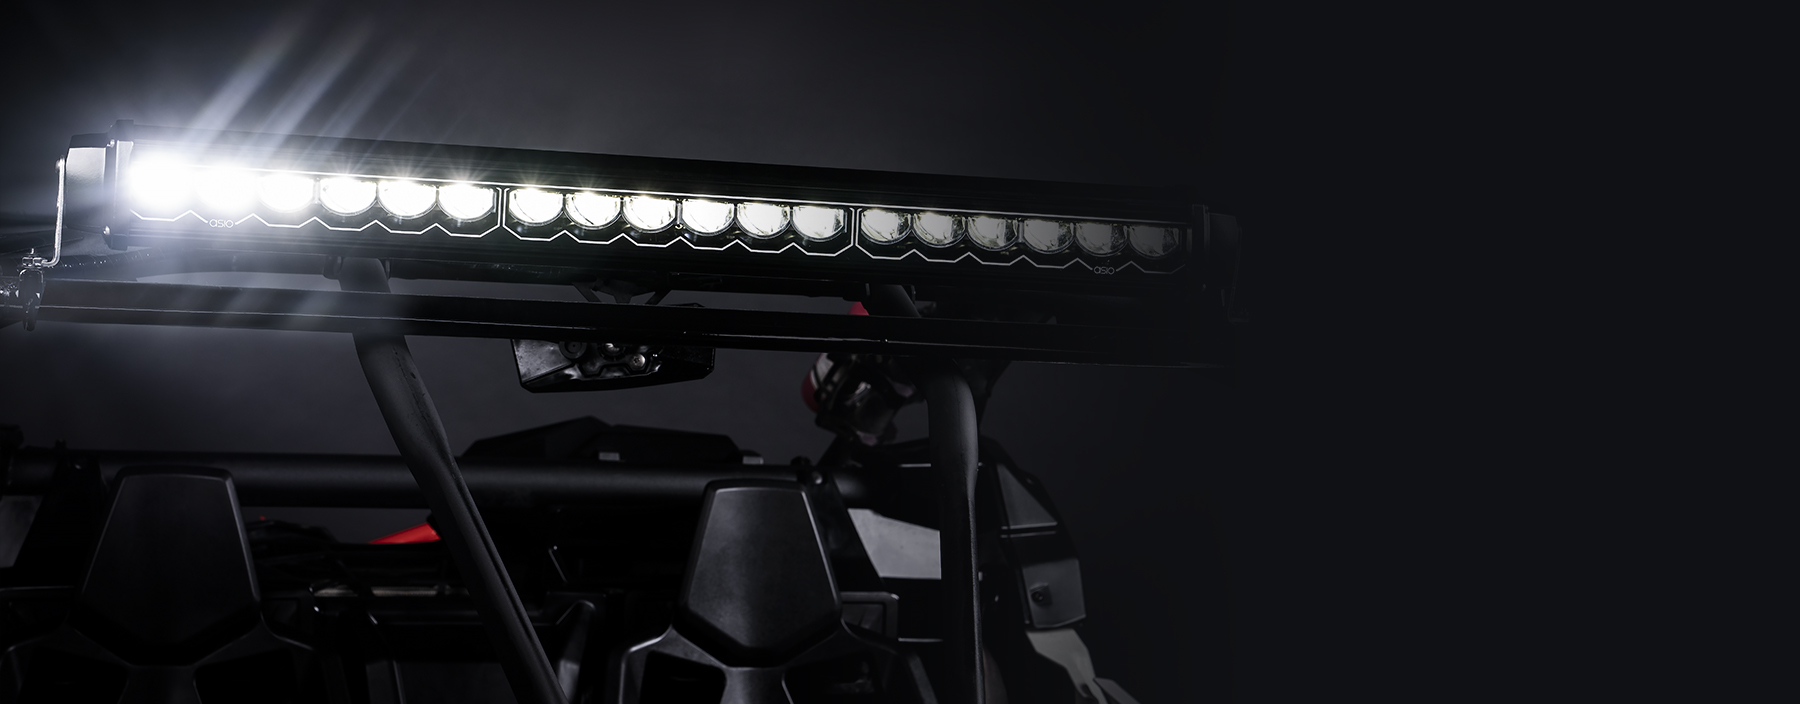 Best light bar for ATV VTT offroad lighting